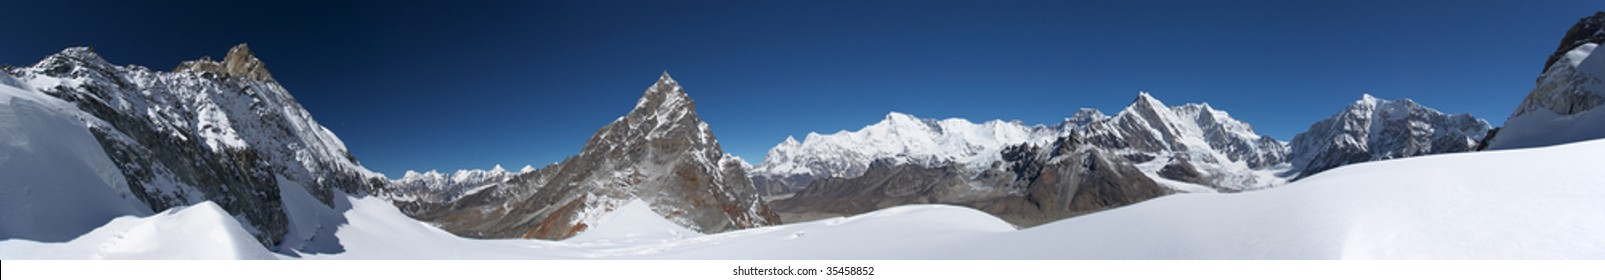 Mountain landscape wide panorama, Himalayas